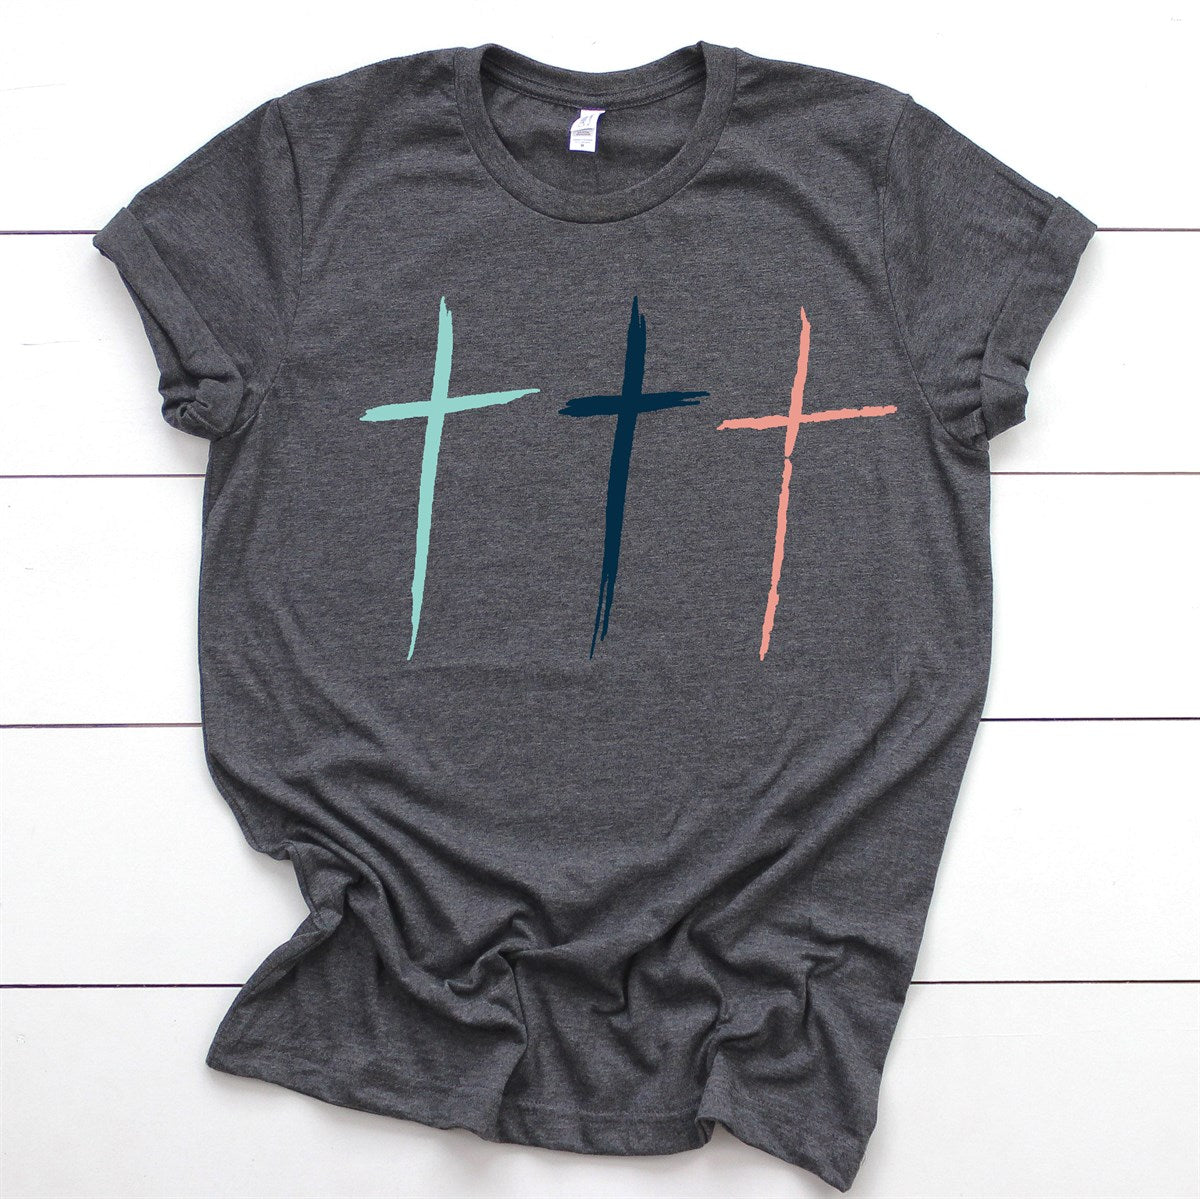 Three Crosses Tee - Limeberry Designs